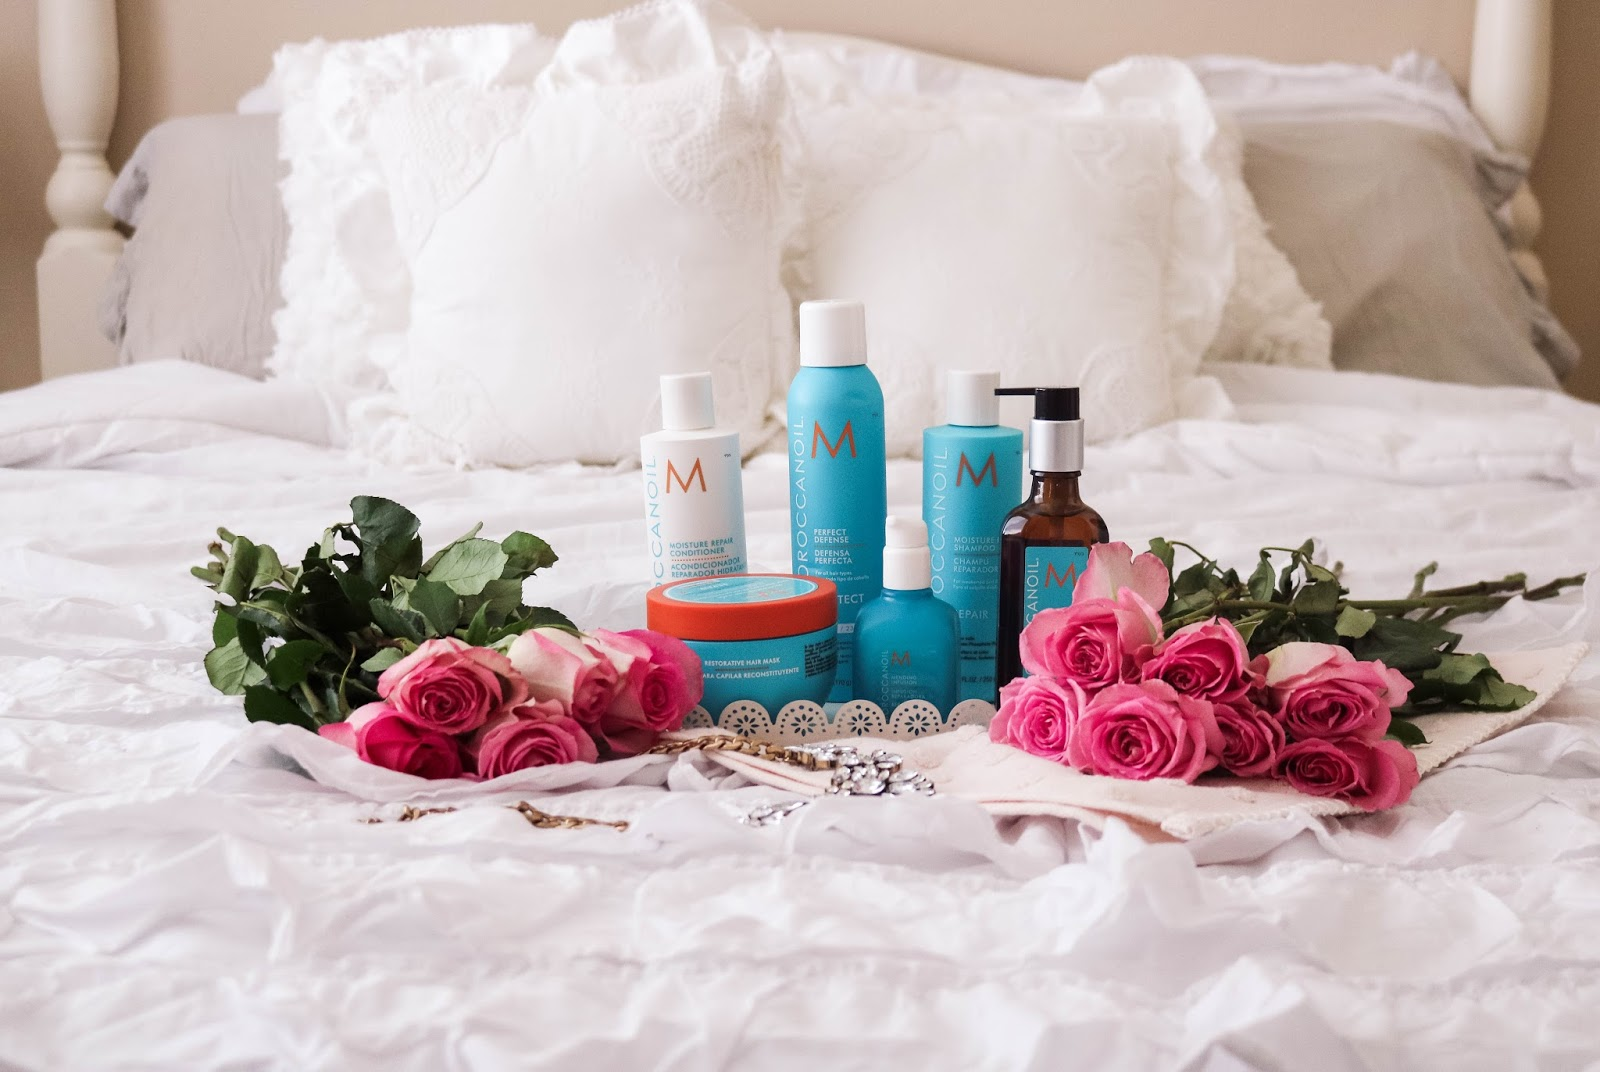 Favorite Moroccanoil hair products